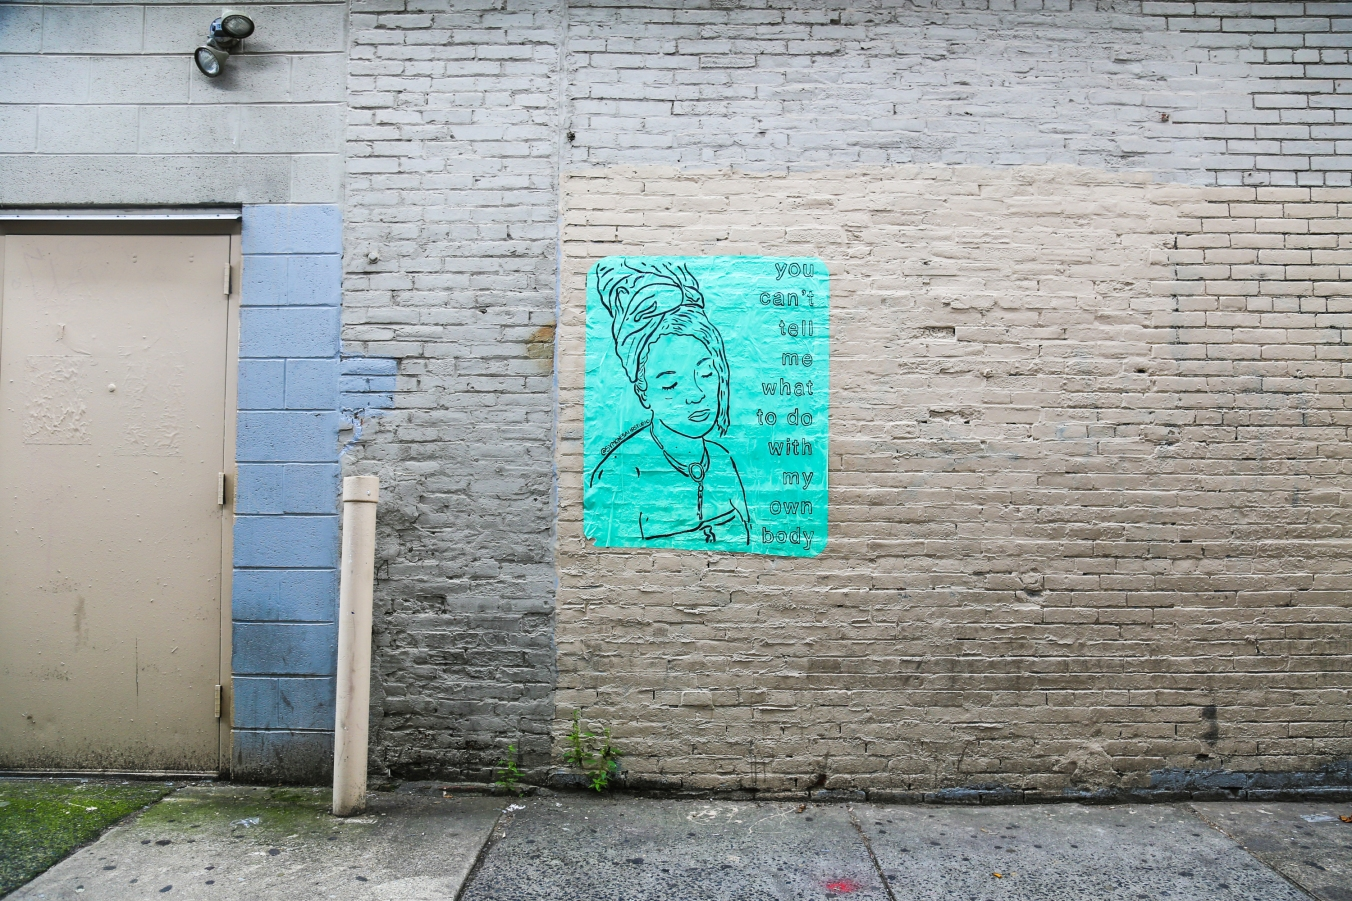 """New Wheatpaste from Symone Salib: """"You Can't Tell Me What to Do with My Own Body"""""""